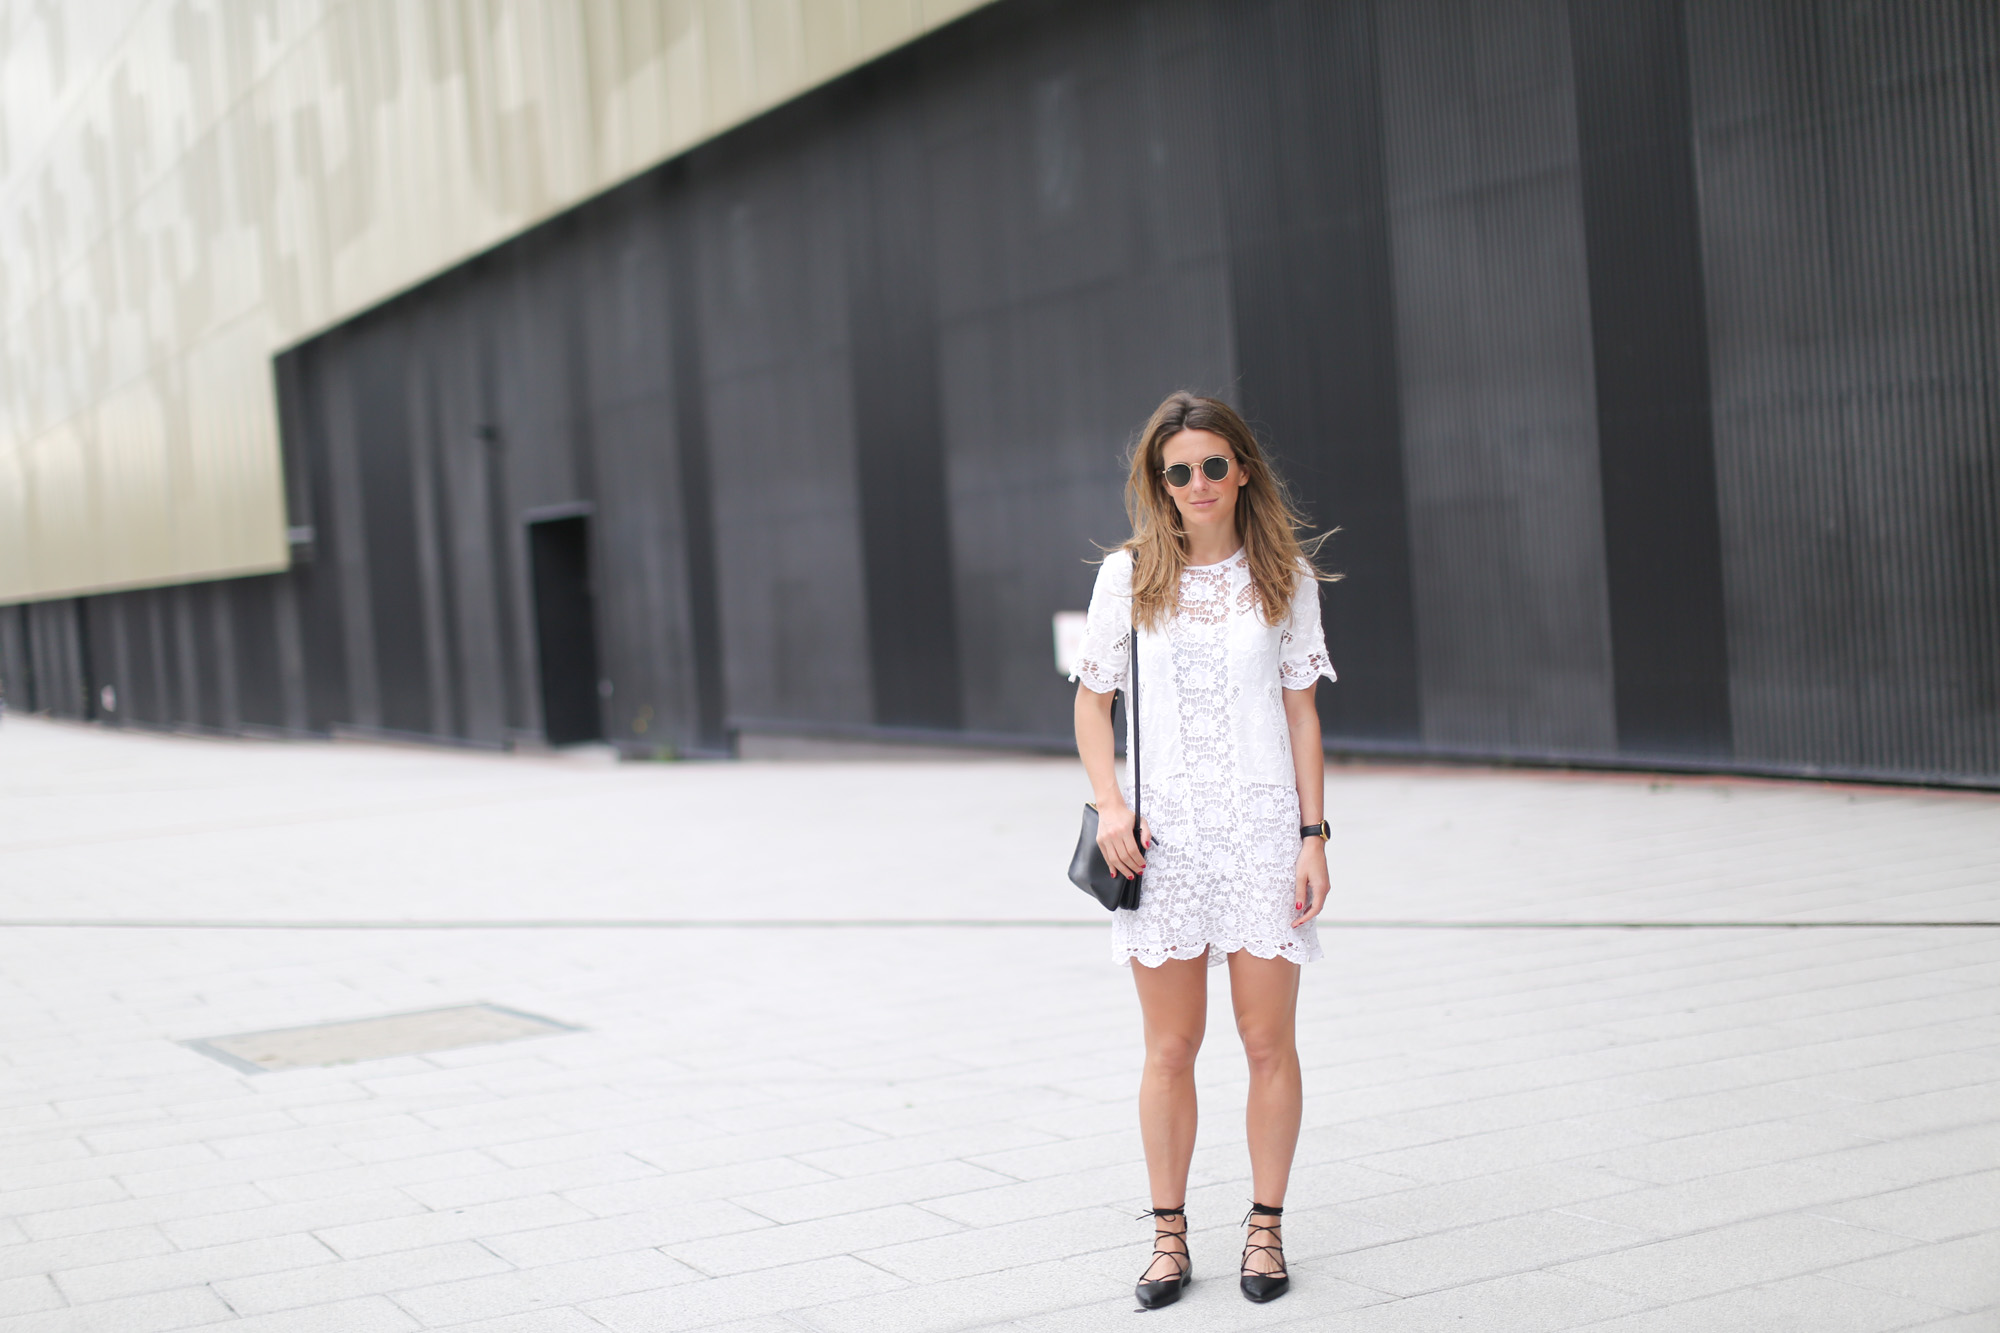 Clochet-streetstyle-zara-chloe-dress-lace-up-flat-shoes